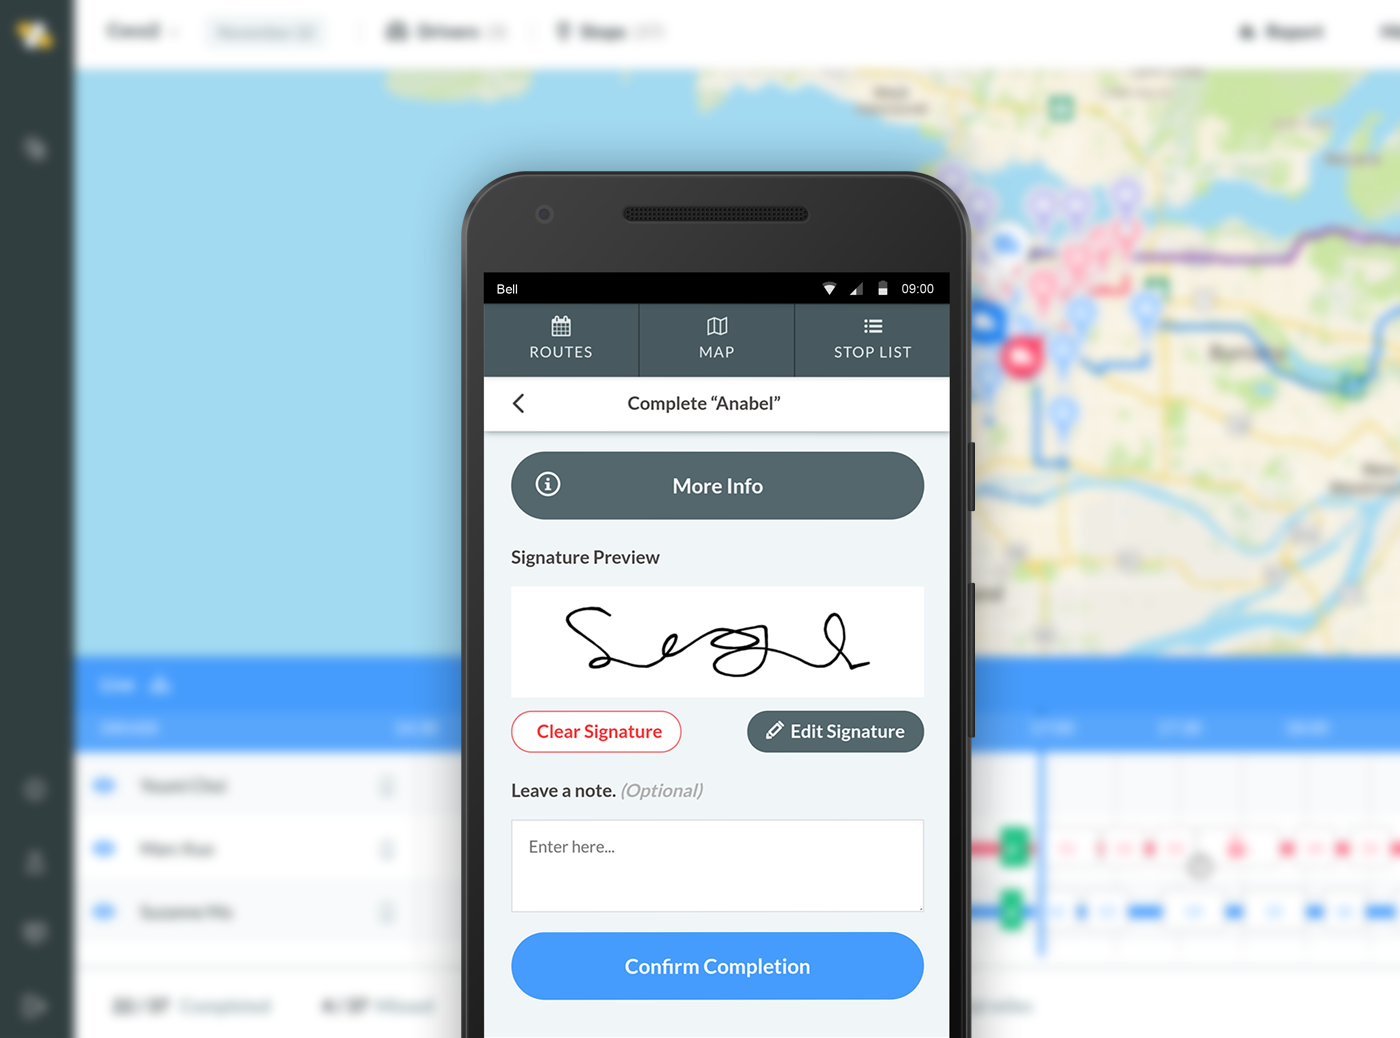 Deliveries can be verified with signature capture